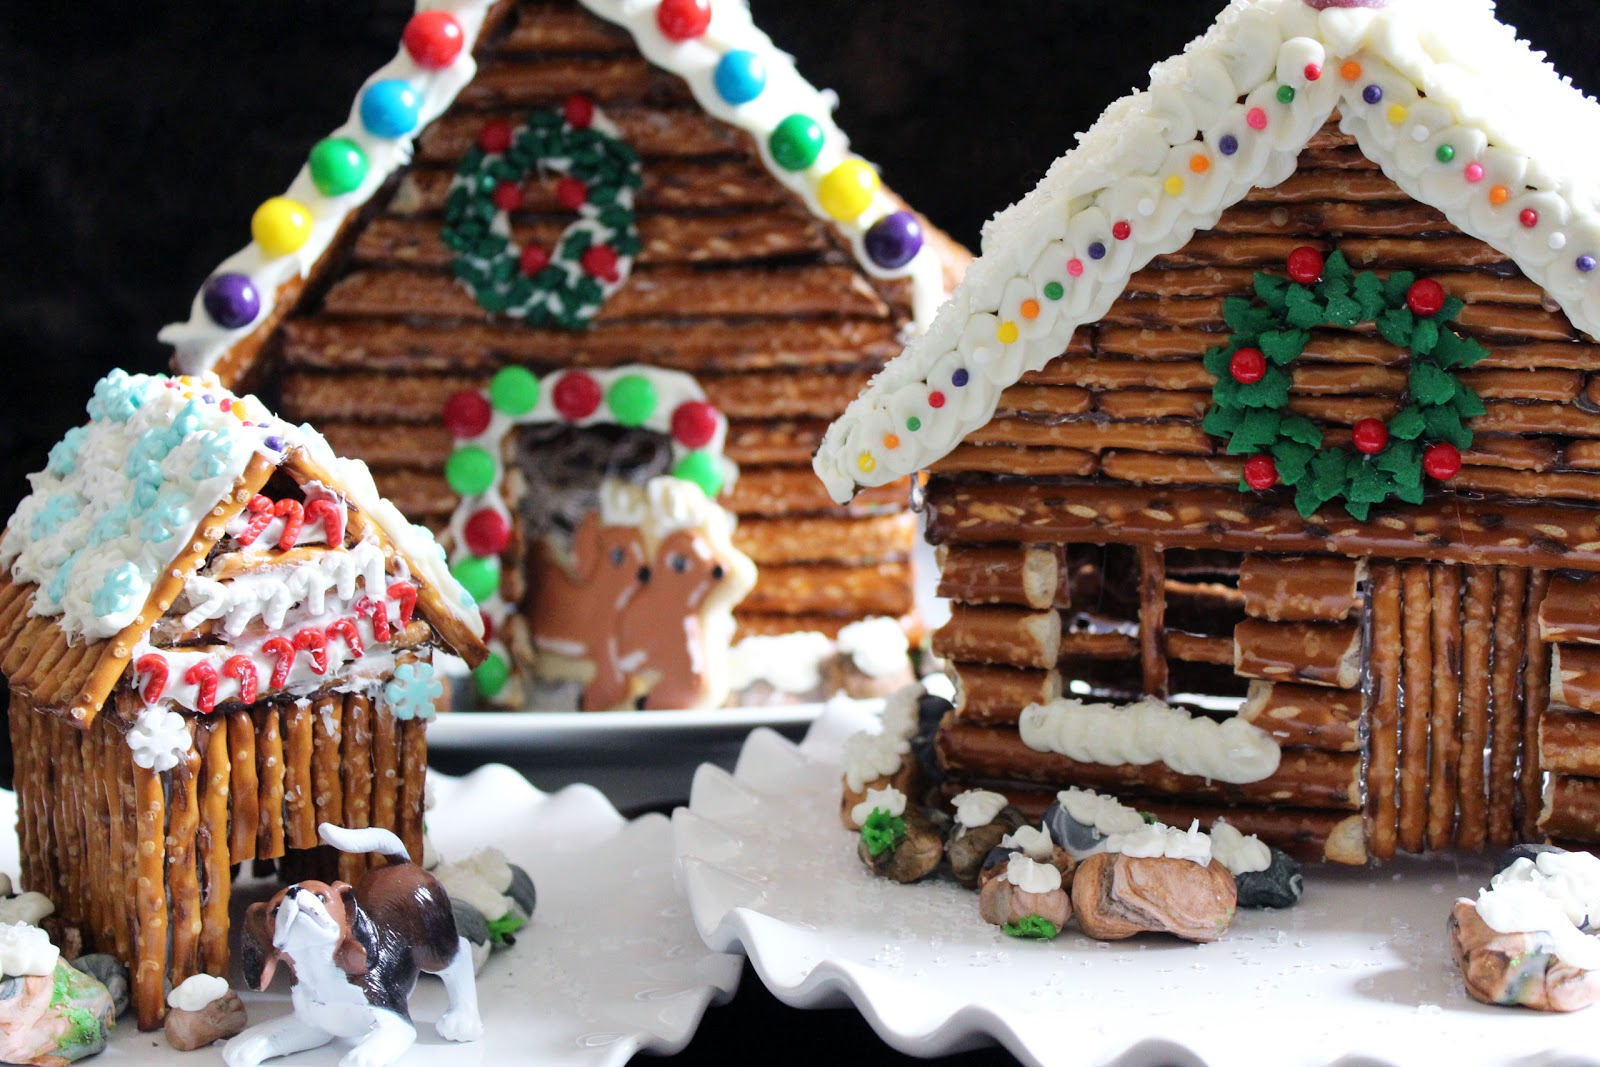 decorated pretzel cabins - Cabins Decorated For Christmas